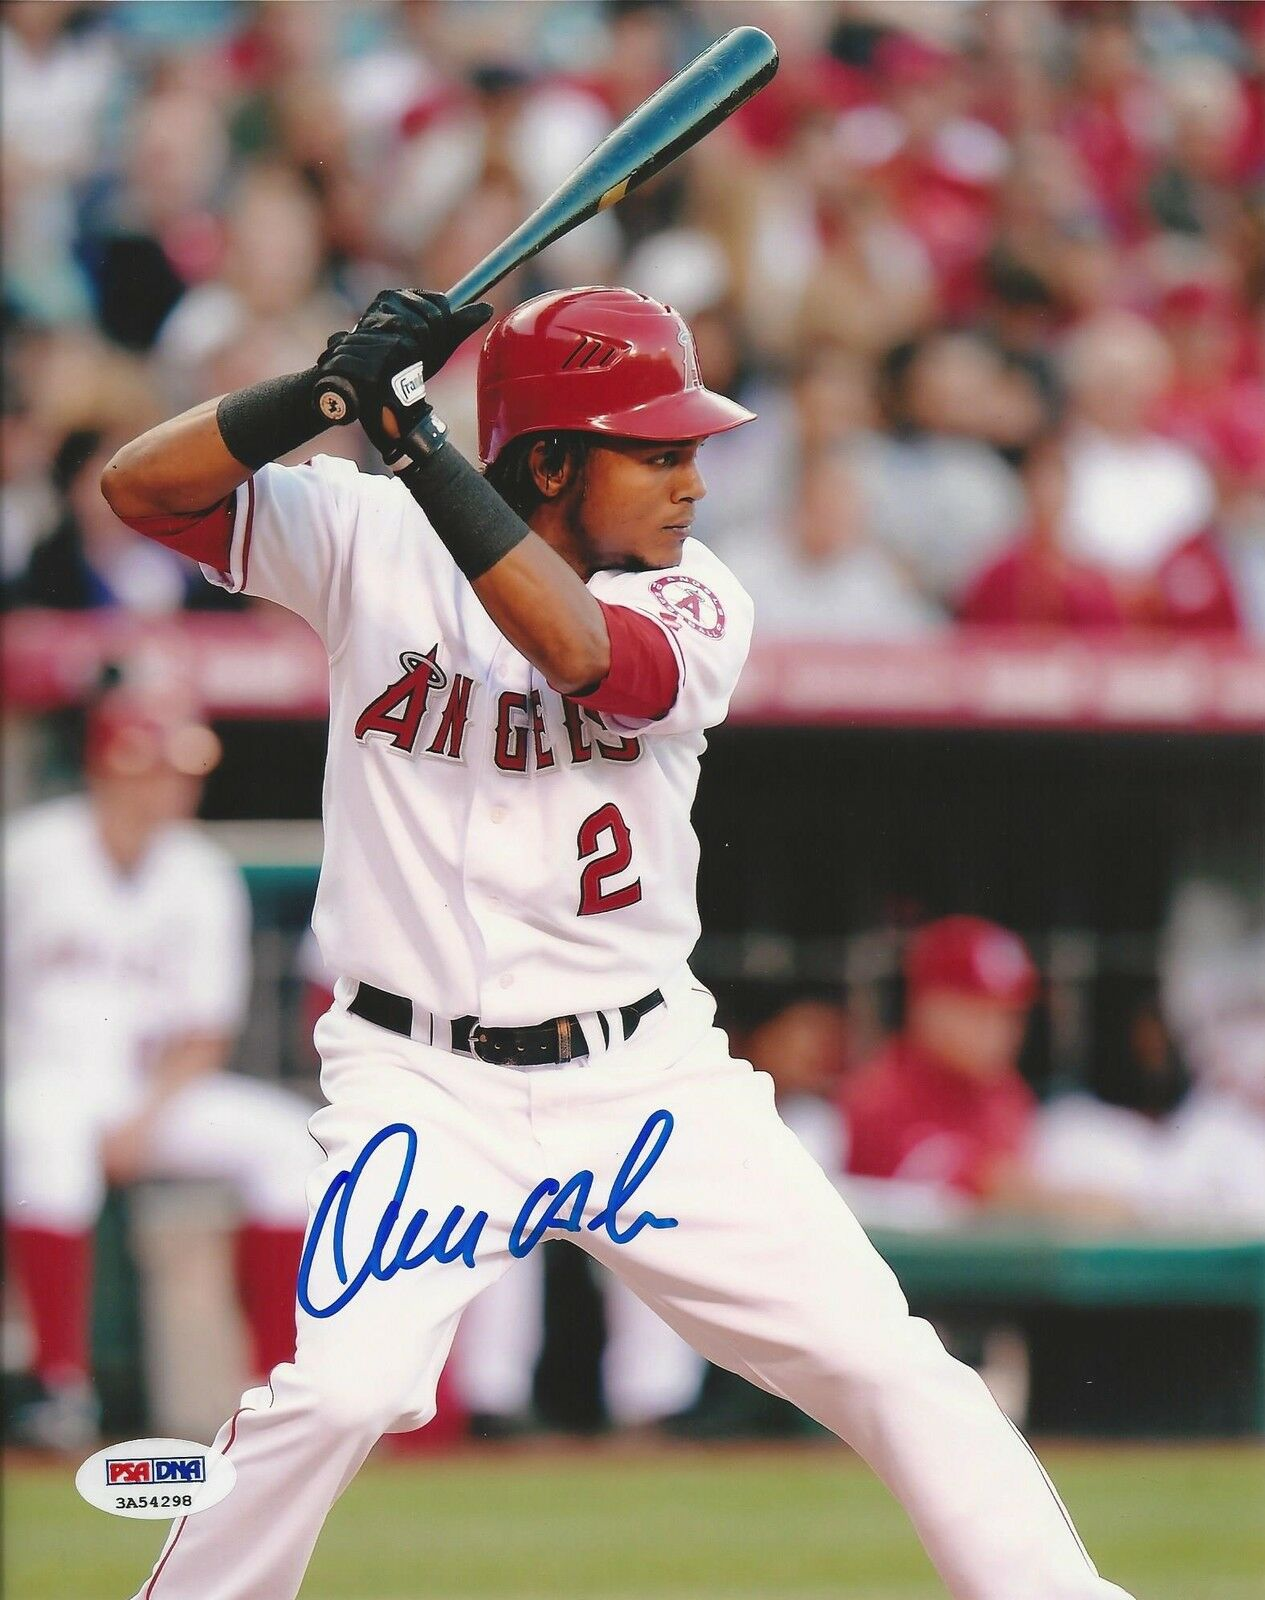 Erick Aybar Los Angeles Angels of Anaheim signed 8x10 PSA/DNA # 3A54298